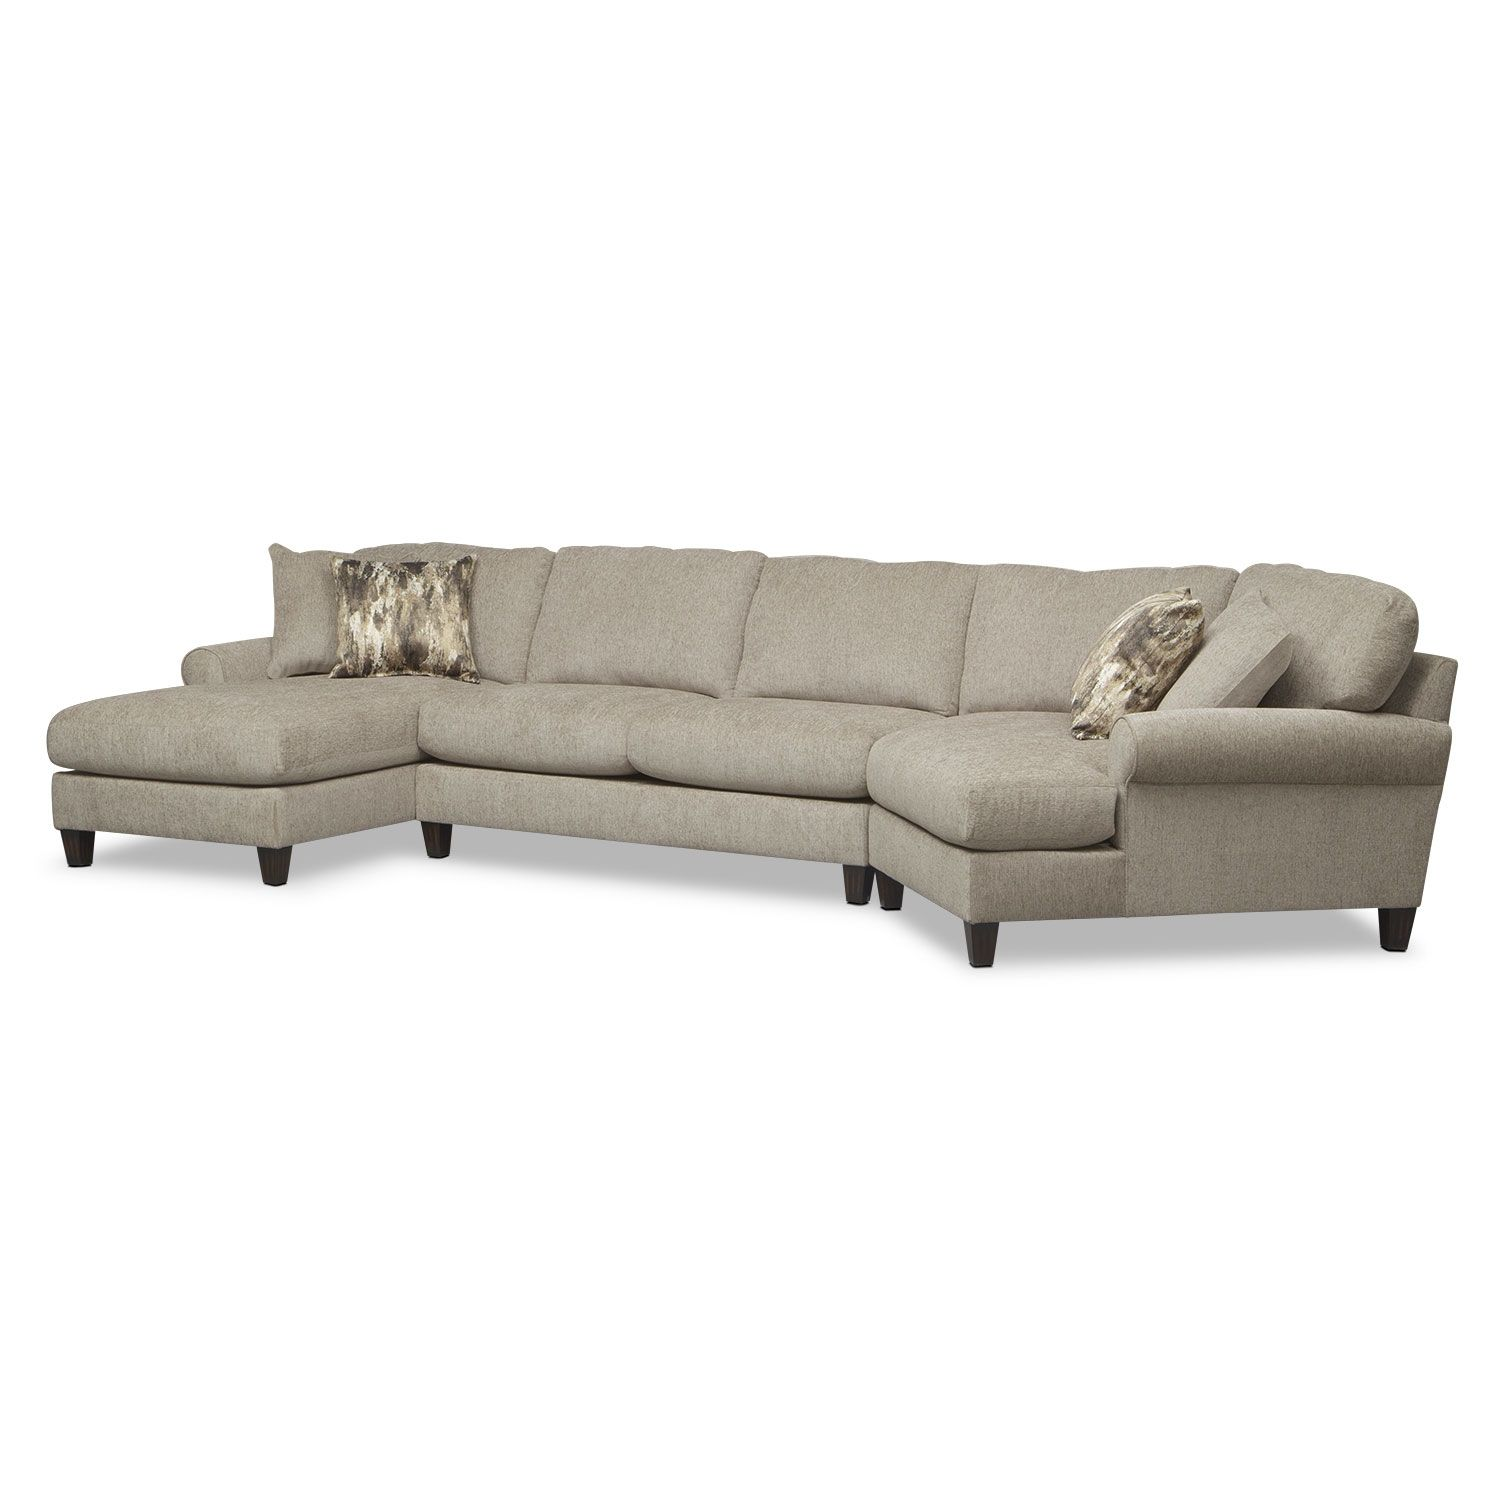 living room furniture karma mink 3 pc sectional with rightfacing cuddler and